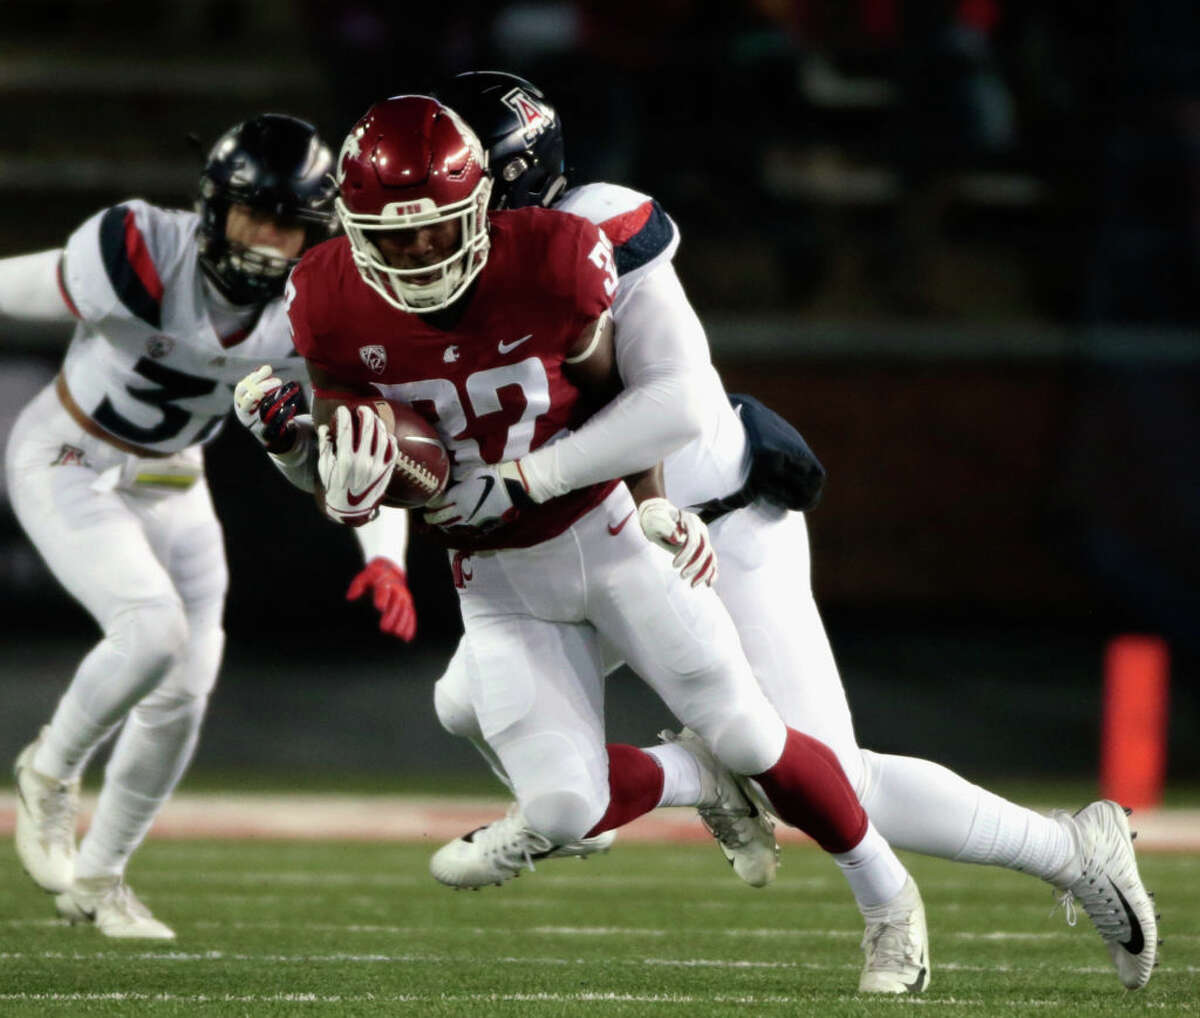 PULLMAN, WA - NOVEMBER 17: James Williams #32 of the Washington State Cougars moves the ball against J.B. Brown #12 of the Arizona Wildcats in the first half at Martin Stadium on November 17, 2018 in Pullman, Washington. (Photo by William Mancebo/Getty Images)